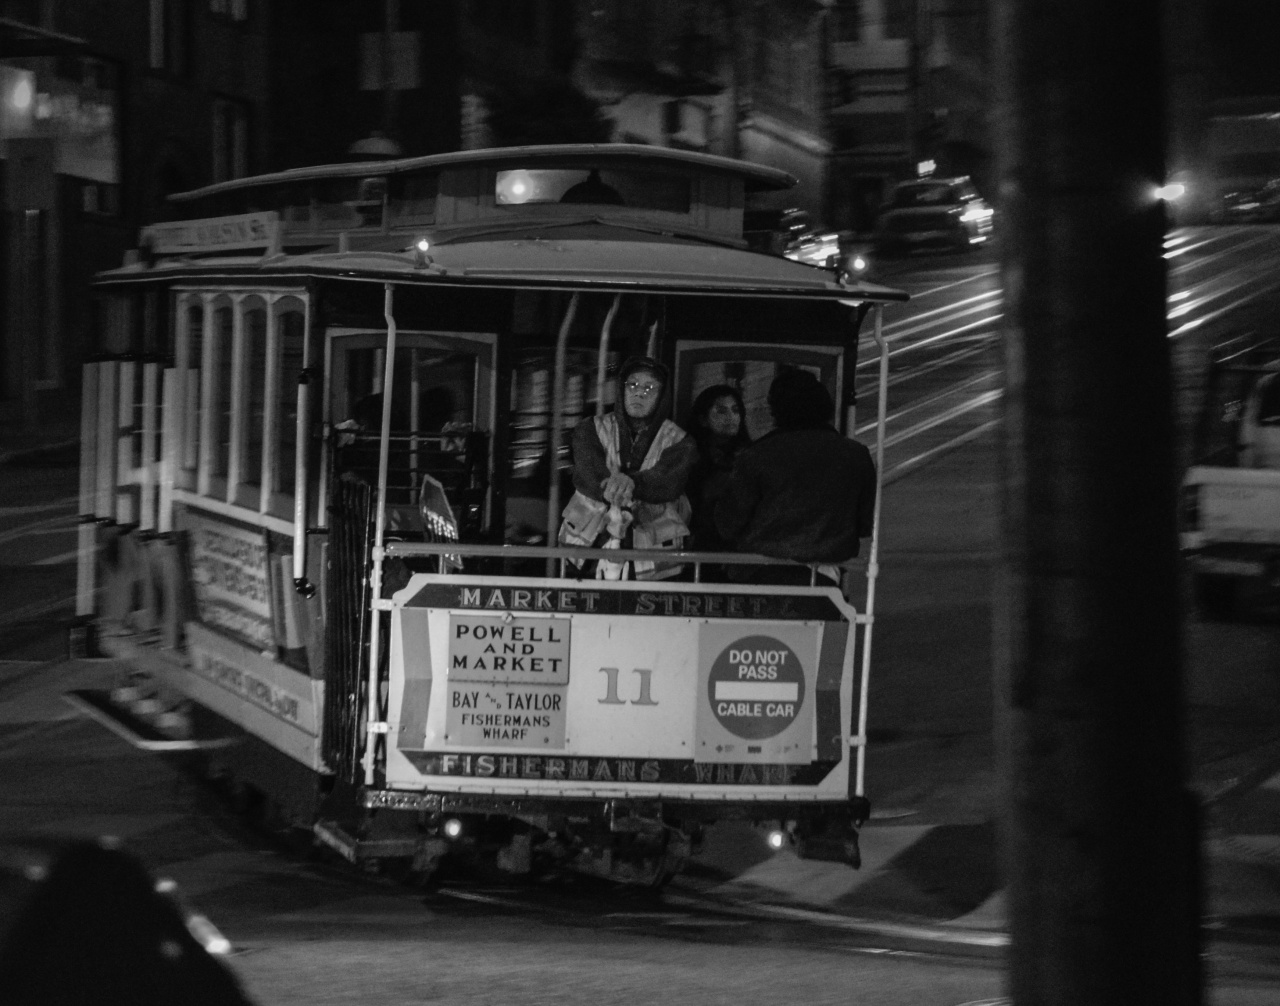 Powell + Market Cable Car